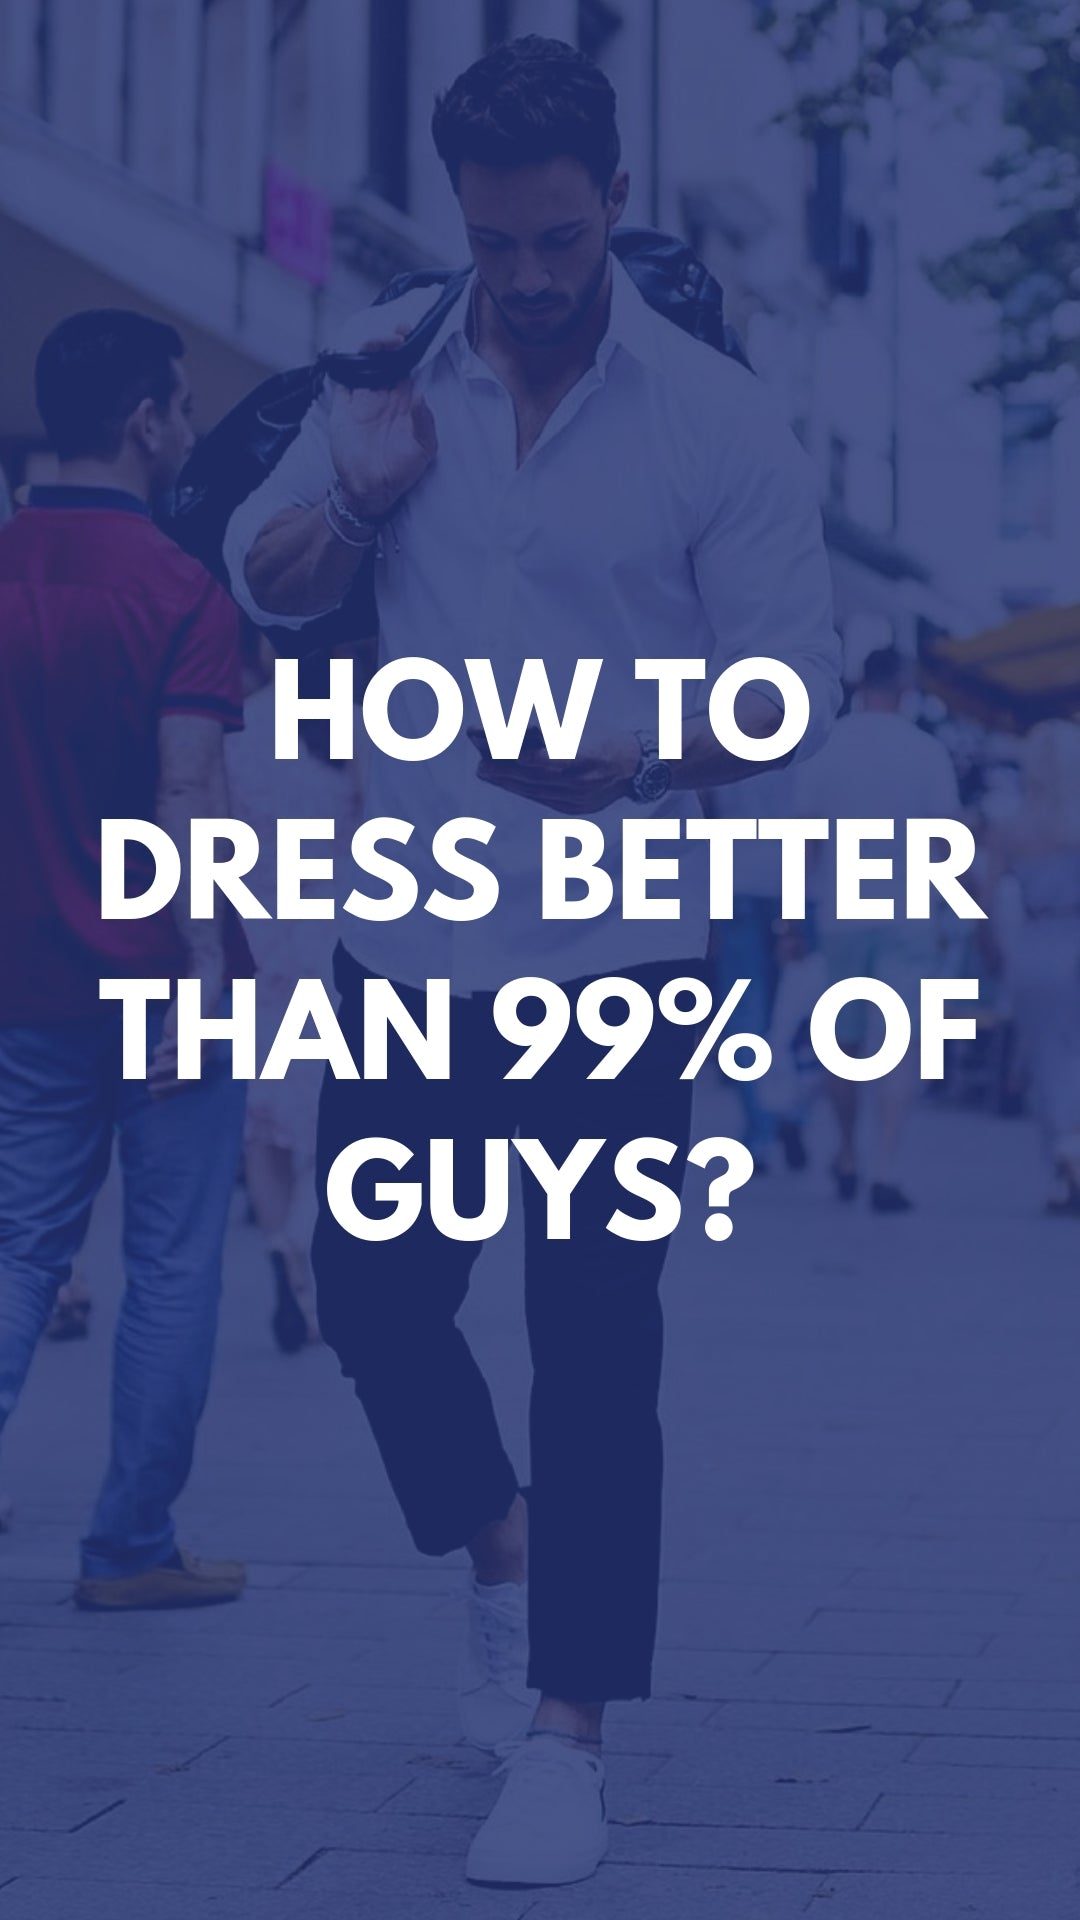 How To Dress Better Than 99% Of Guys? Here's a Secret #fashiontips